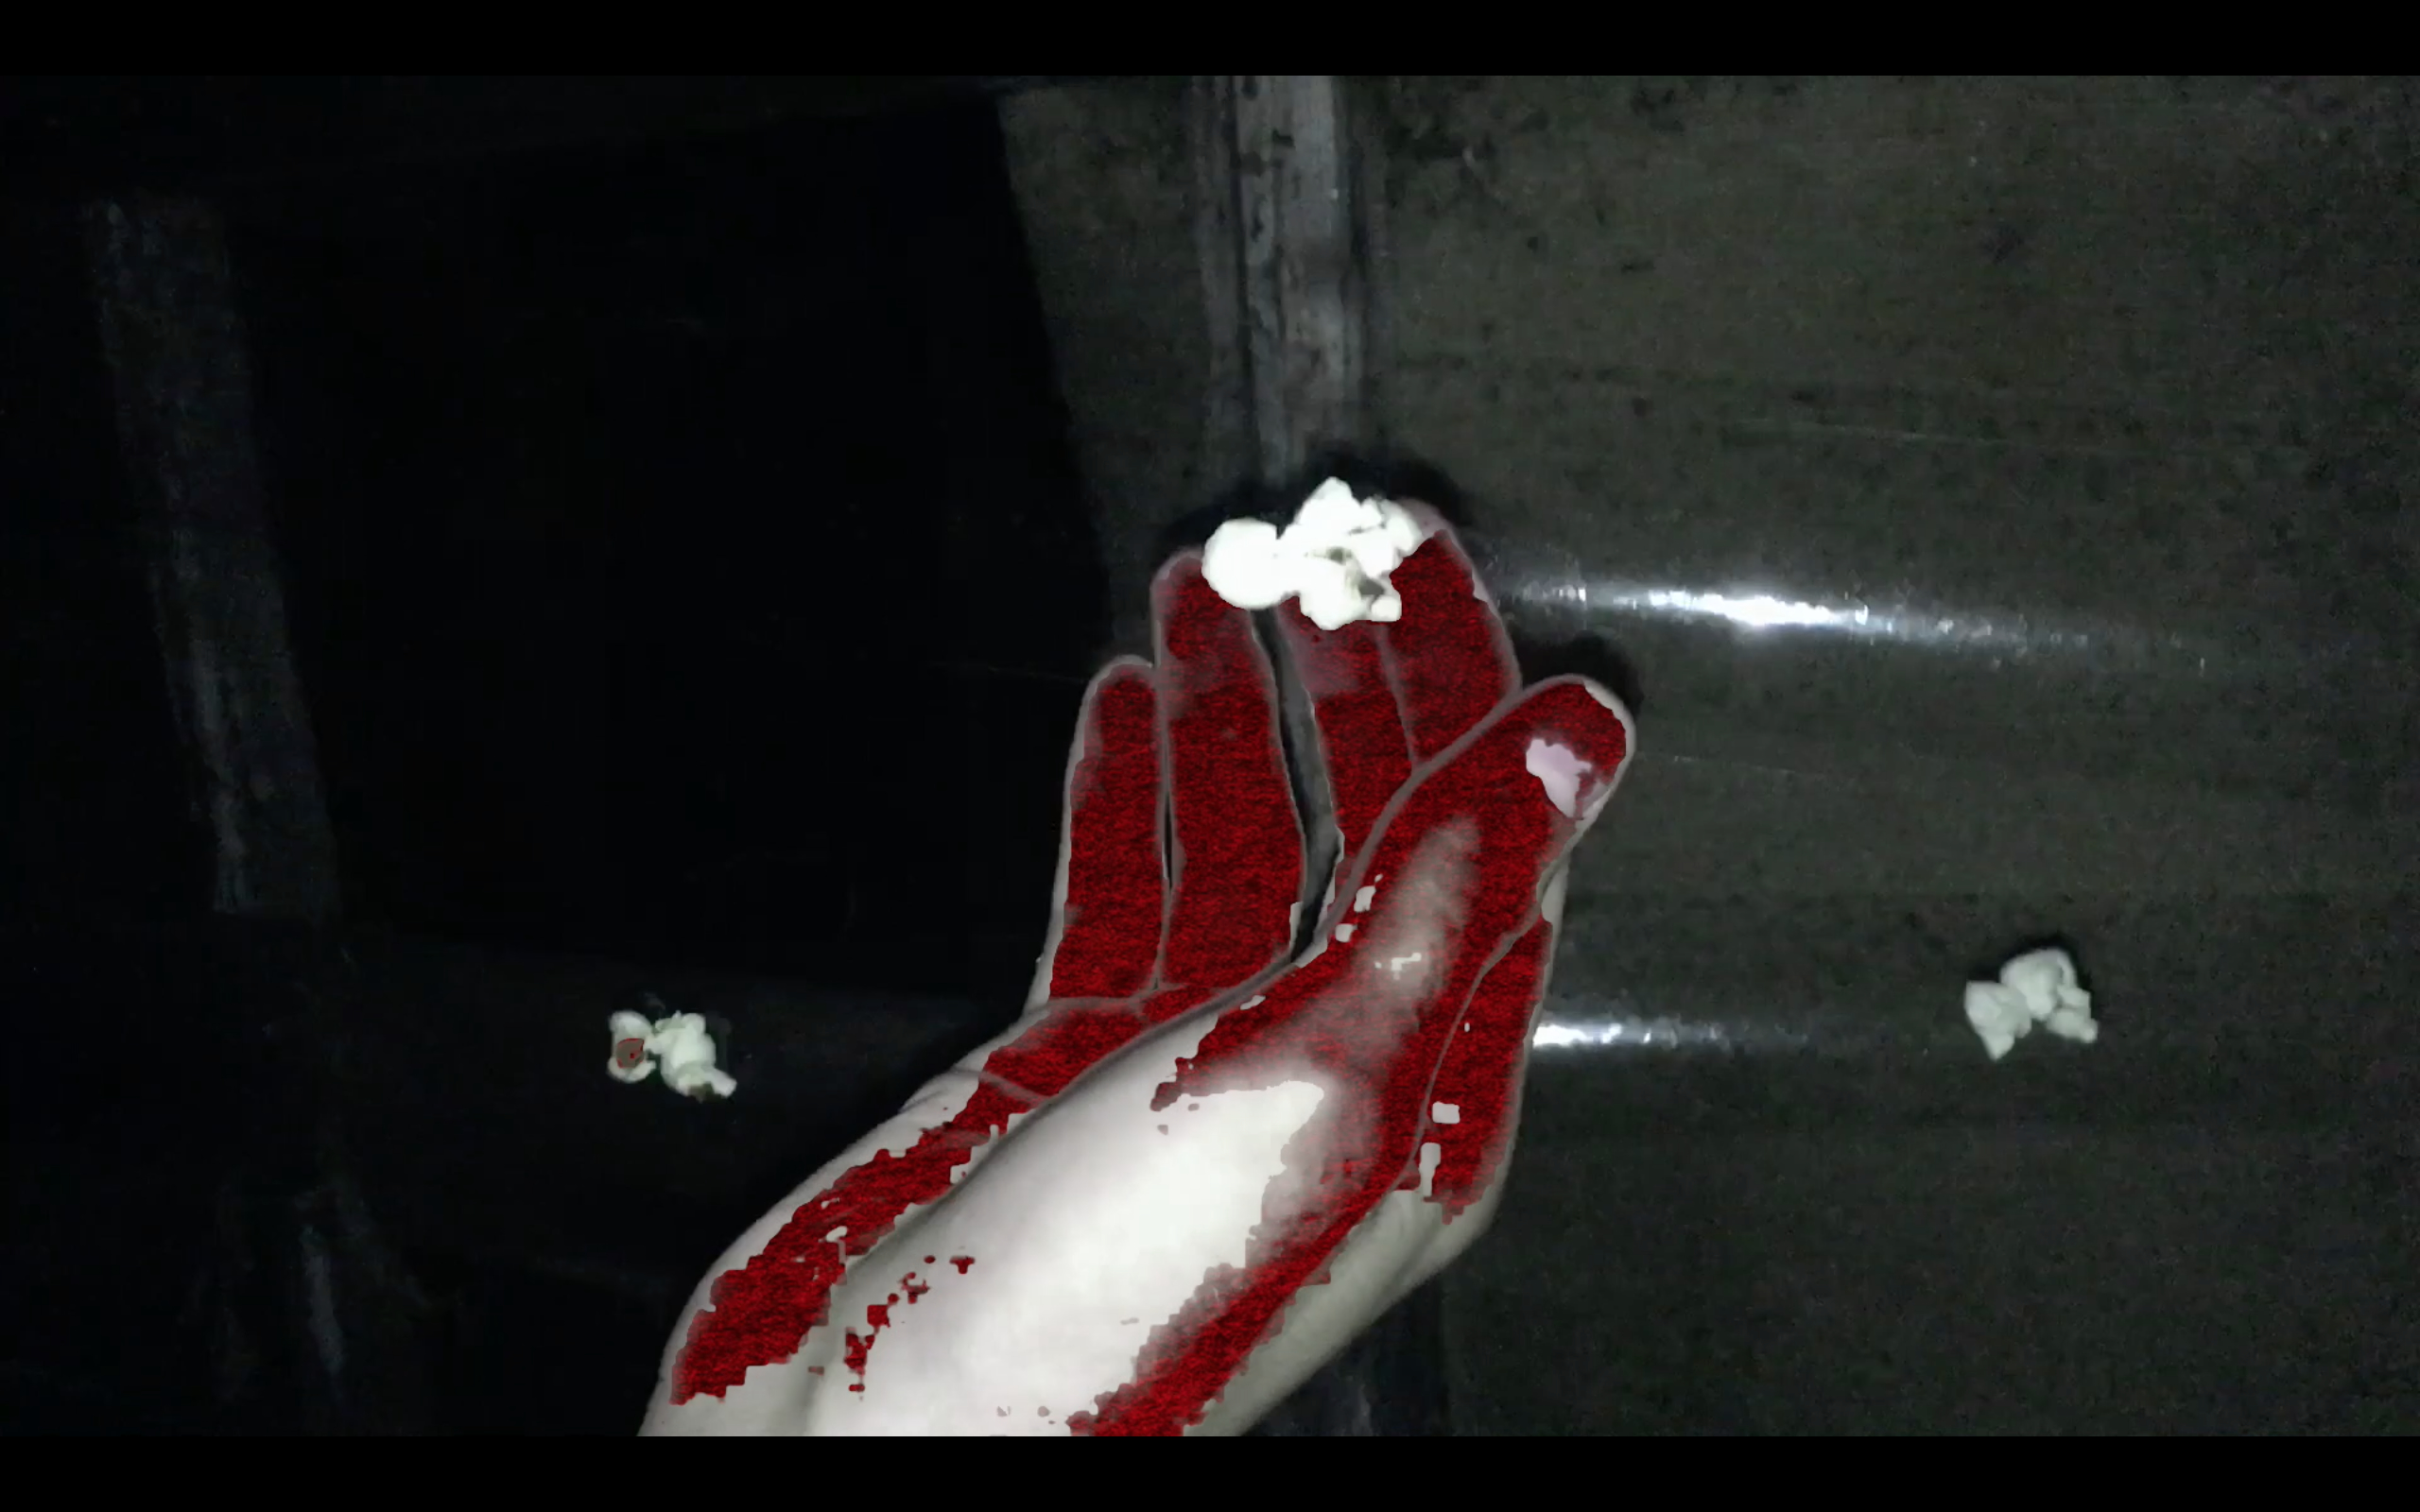 A screenshot from a video of a red hand touching a piece of popcorn stuck to some sellotape.